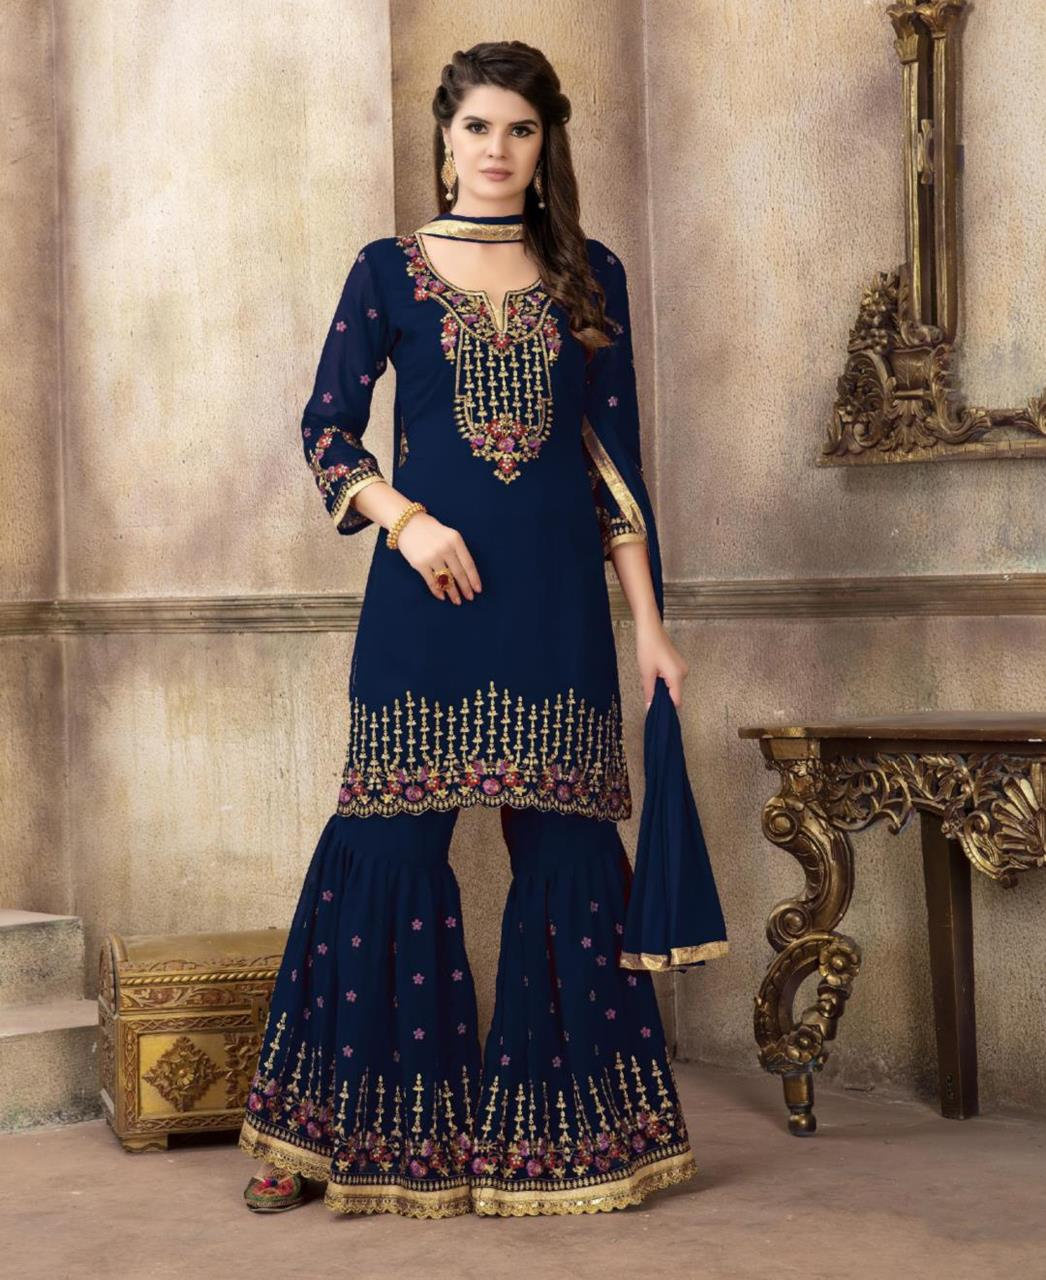 Embroidered Georgette Navyblue Palazzo Suit Salwar Kameez